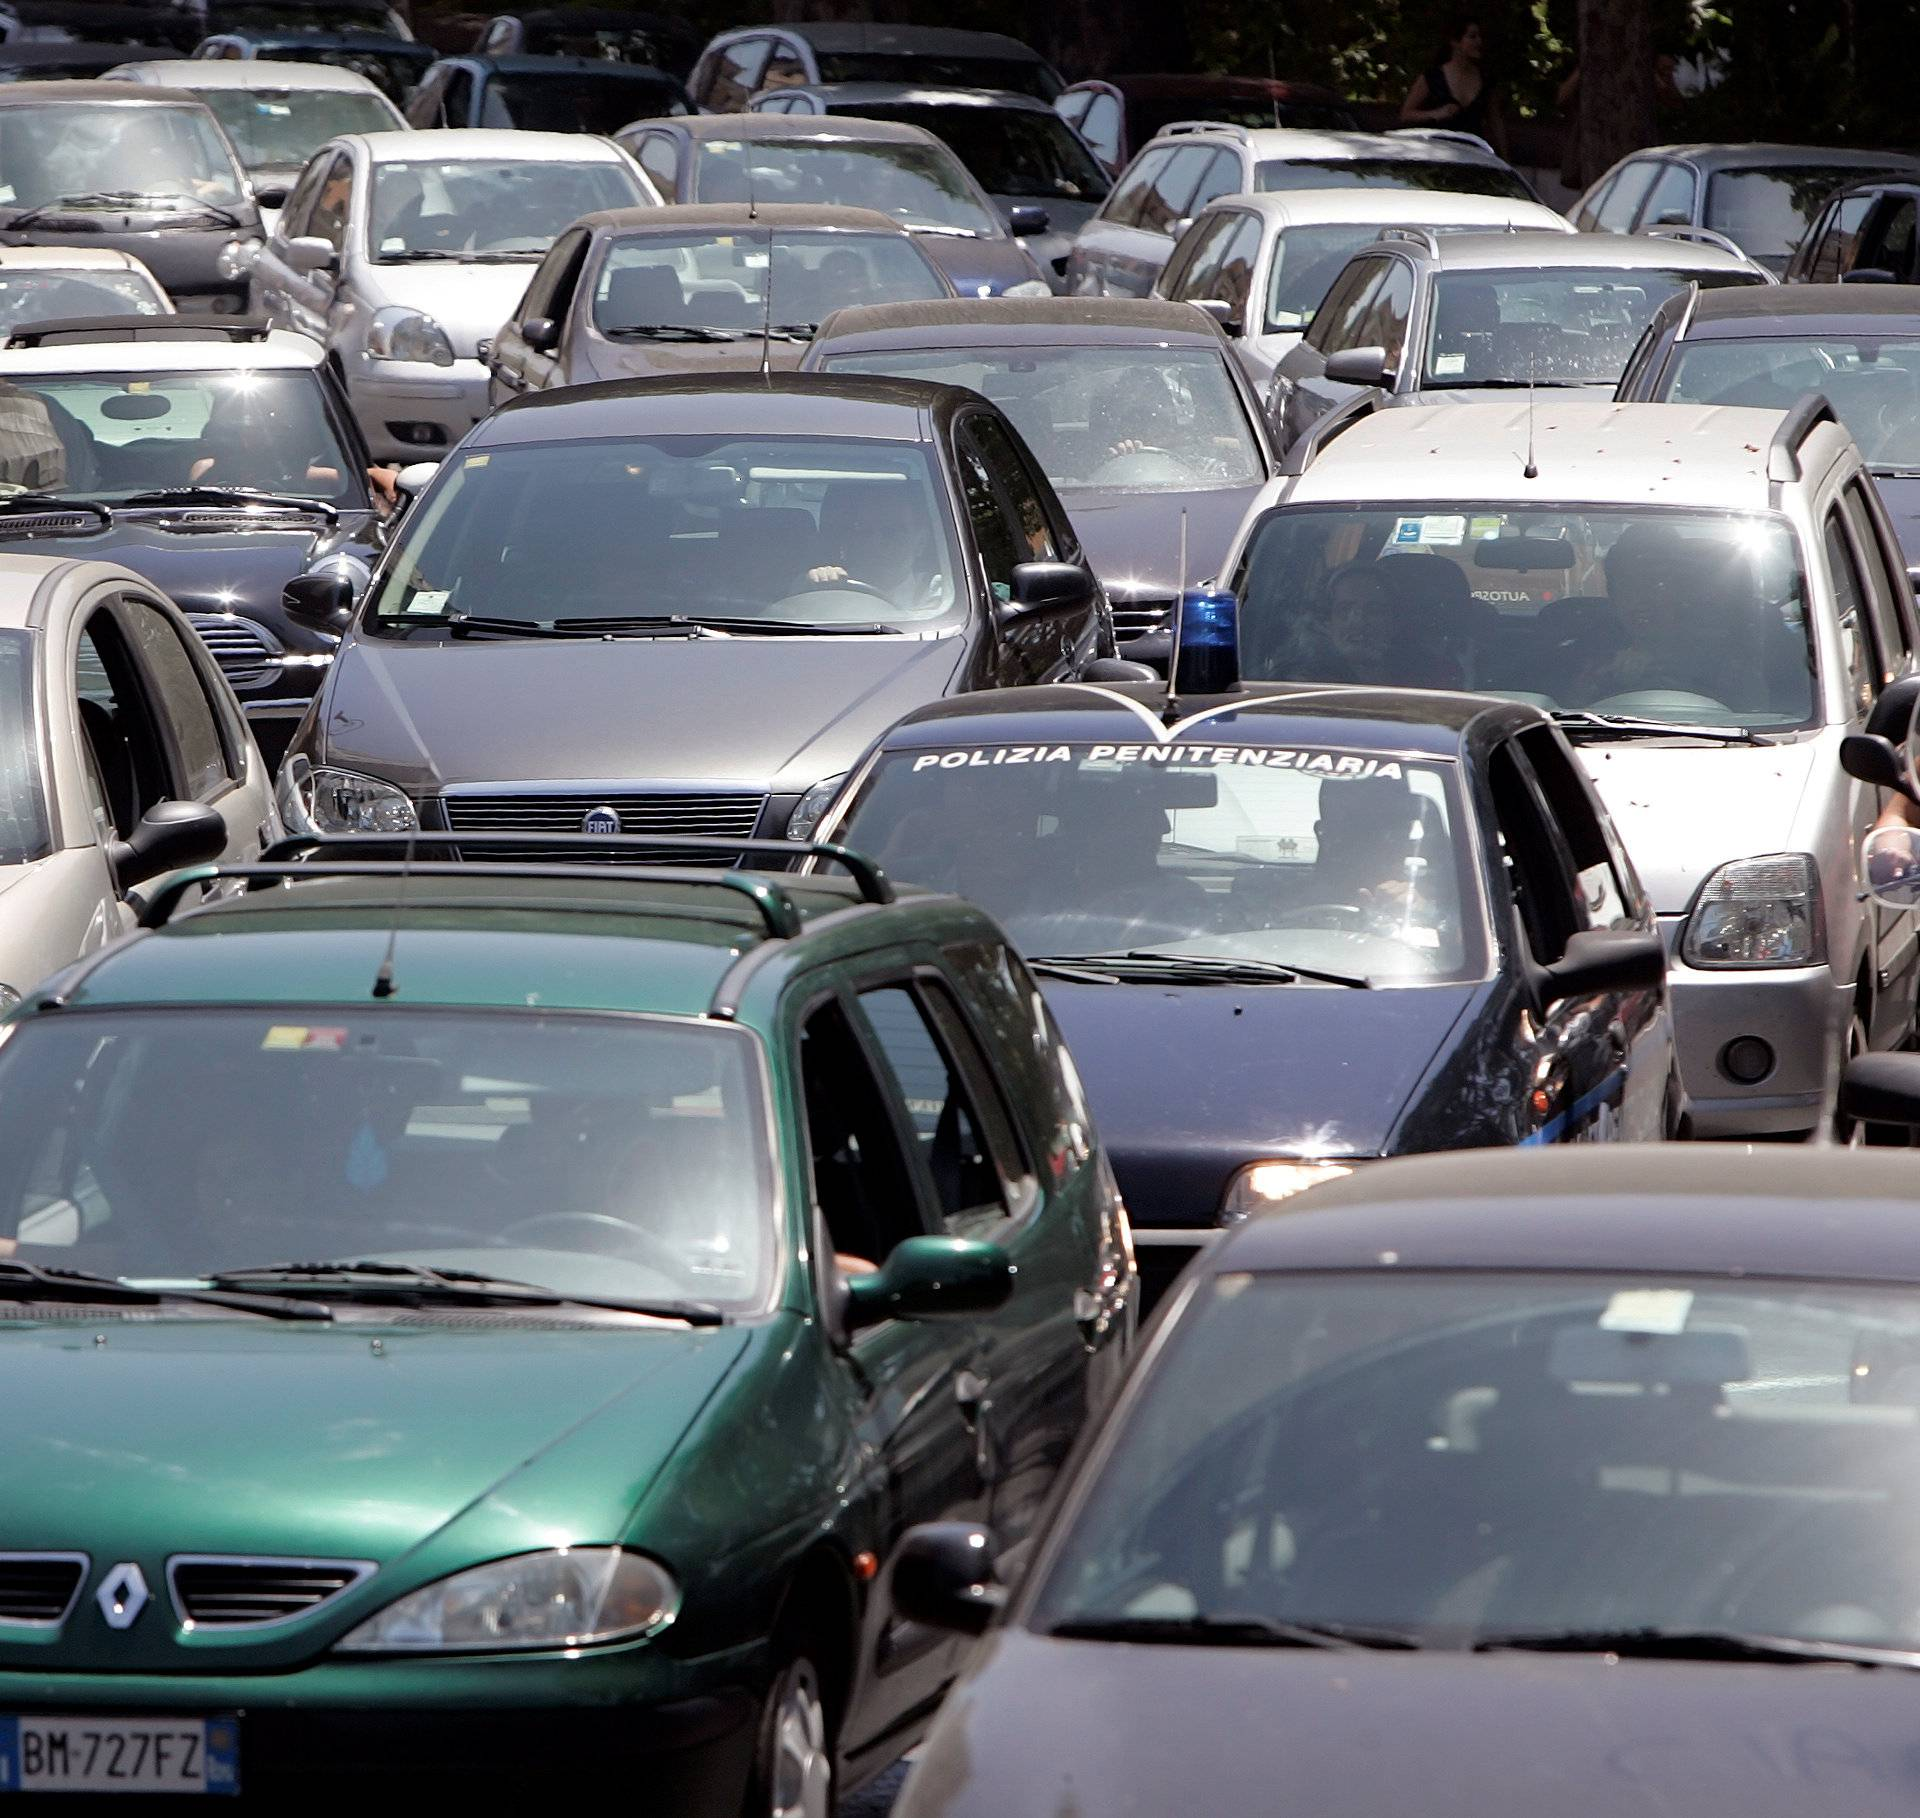 Cars are seen stuck in a traffic jam in downtown Rome